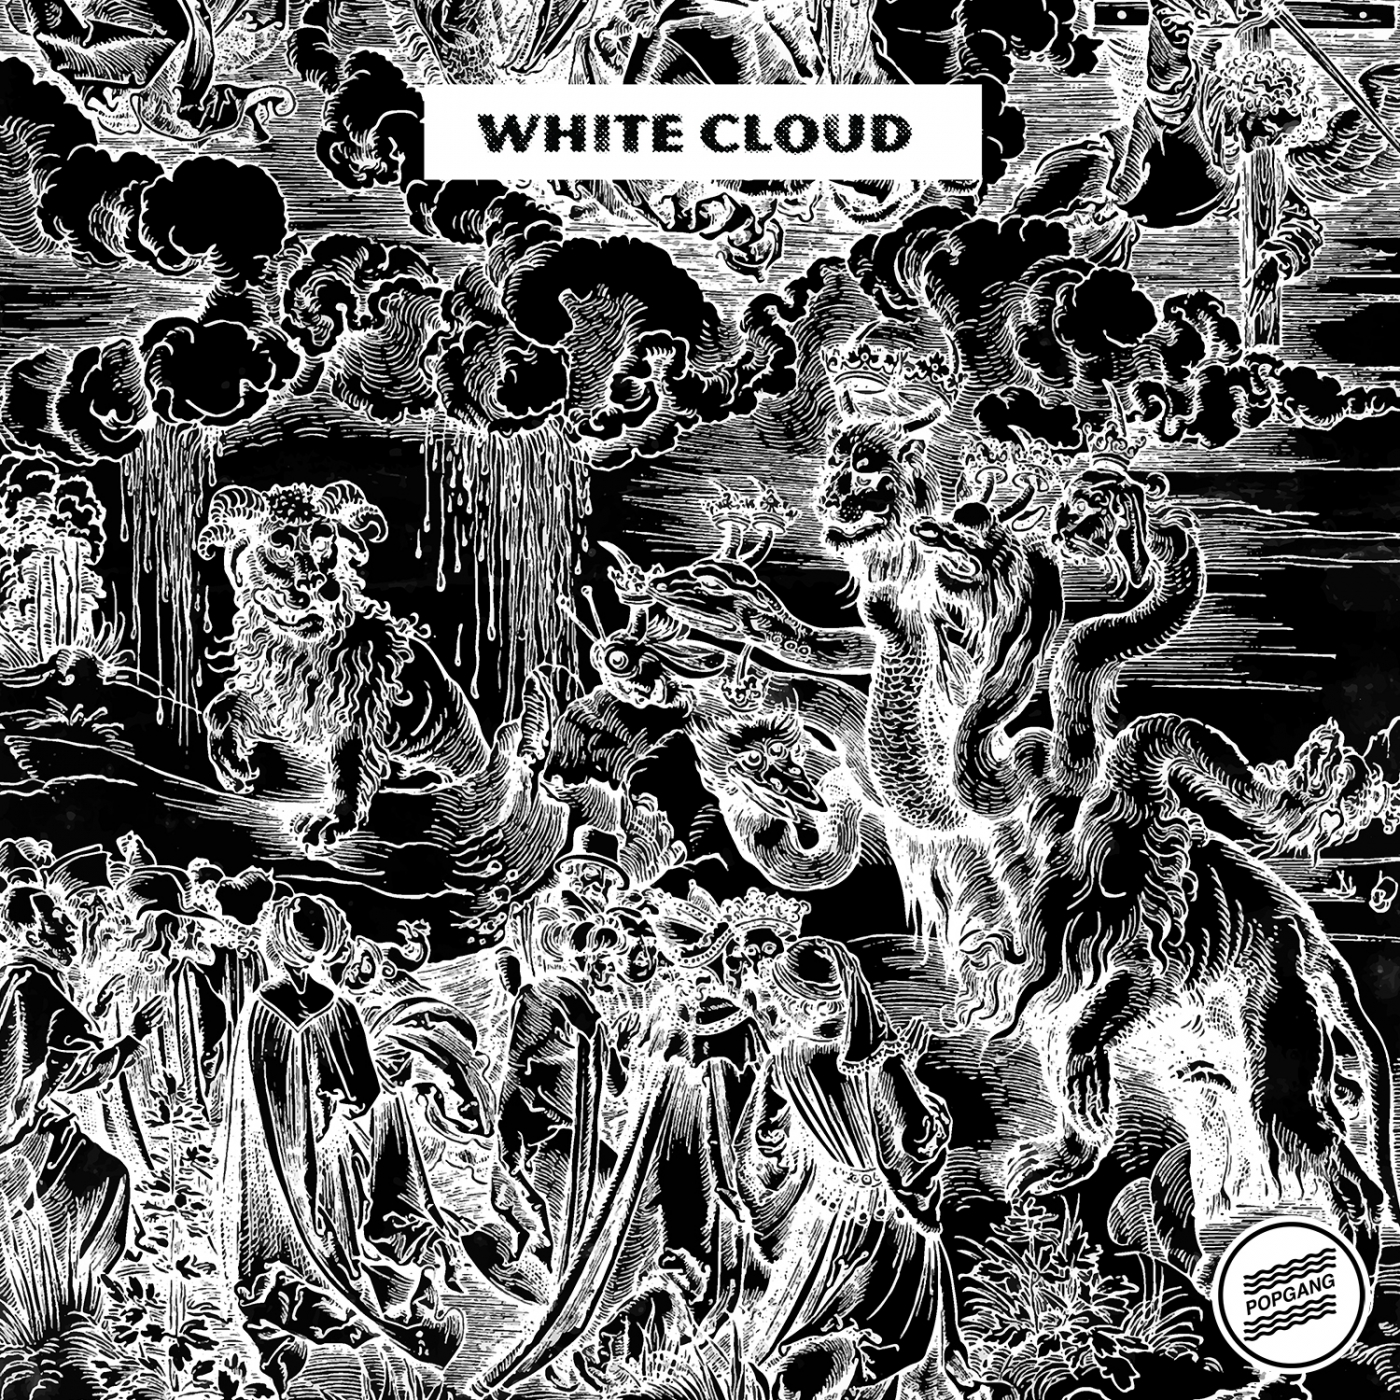 White Cloud - Seven Heads